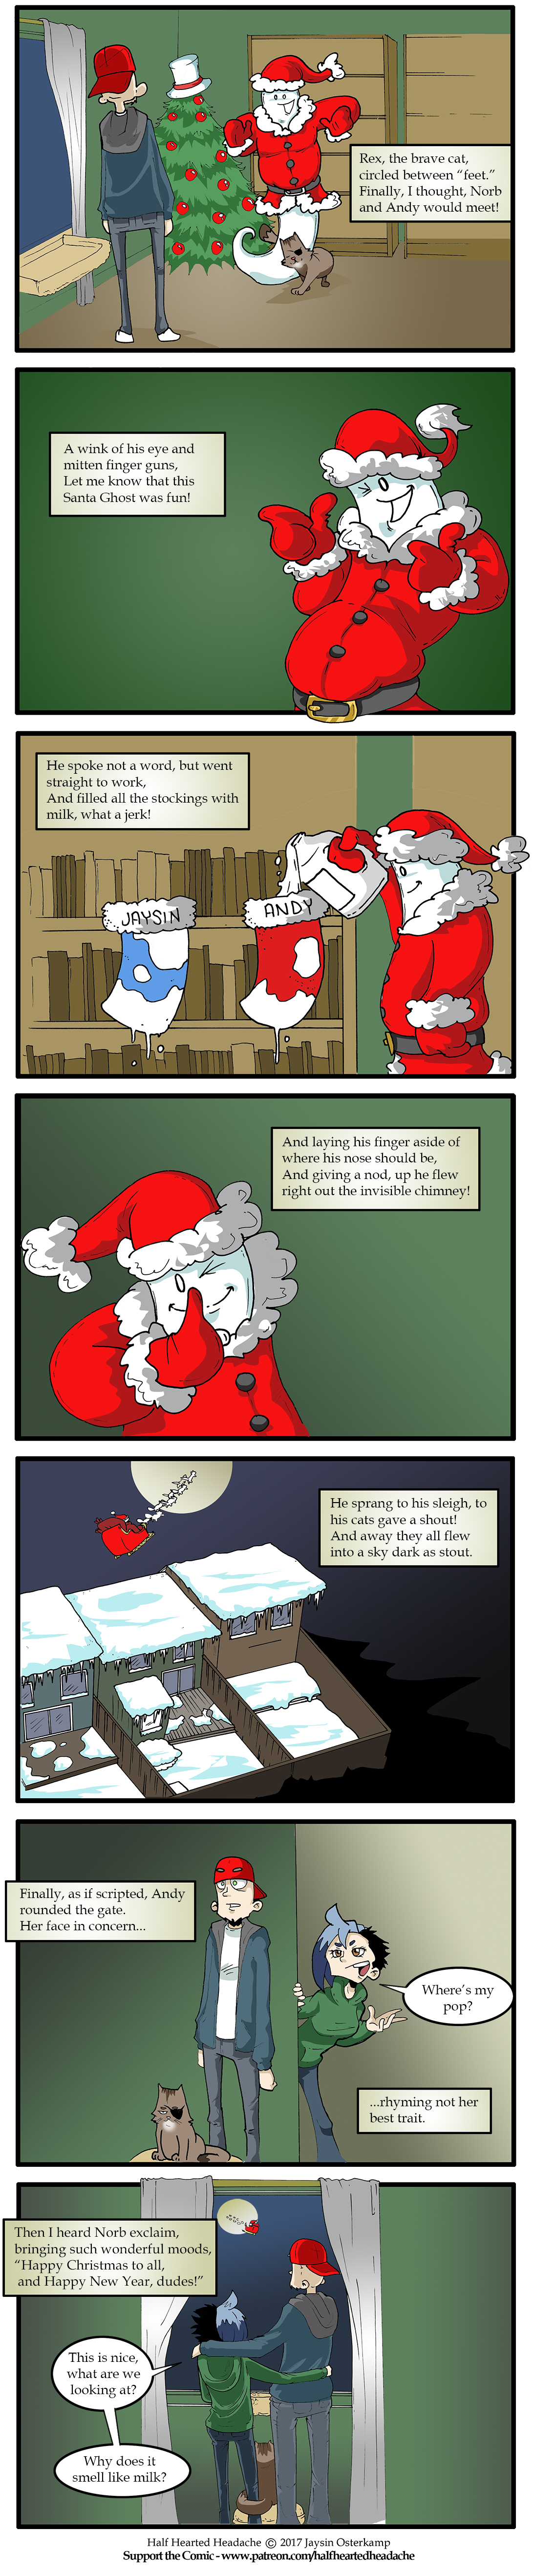 383 – Twas the Night Before Christmas part 3